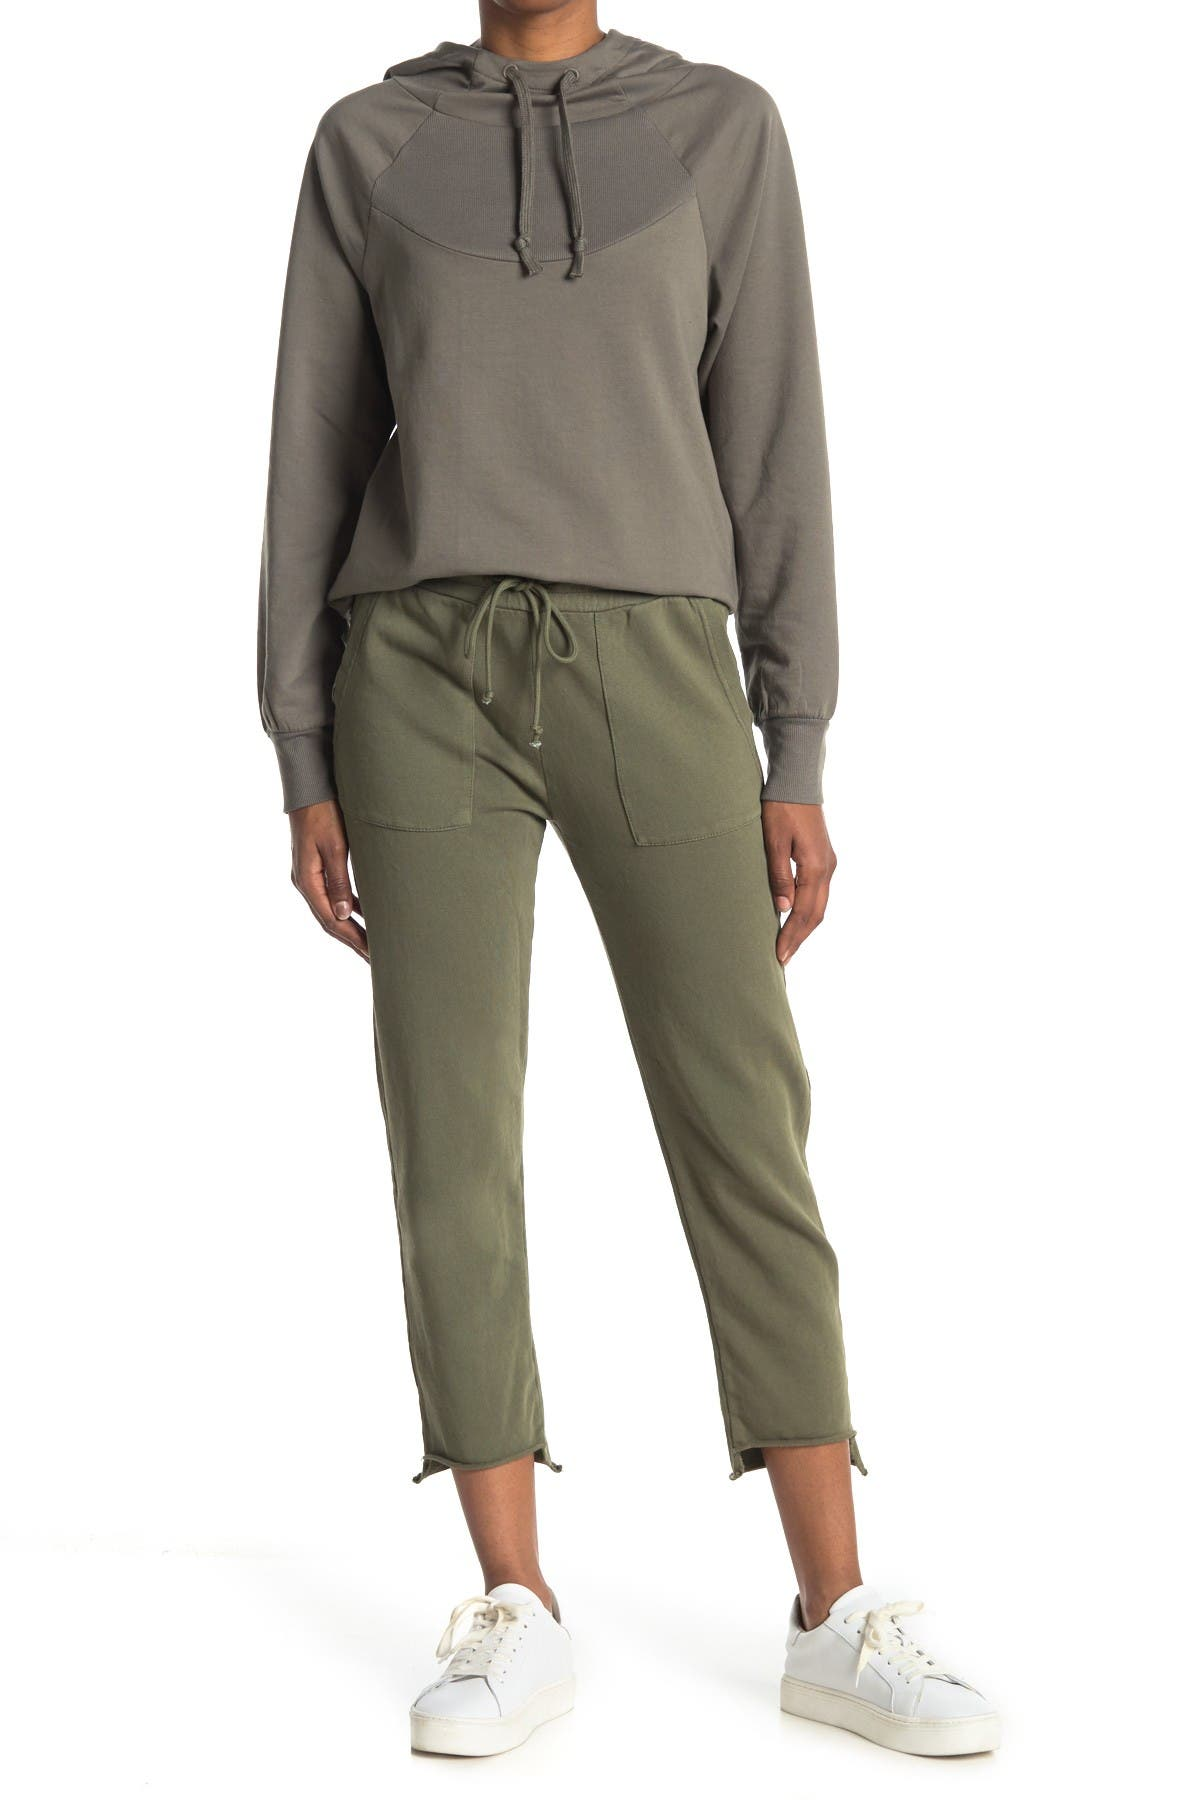 Image of Threads 4 Thought Romilly Step Hem Joggers